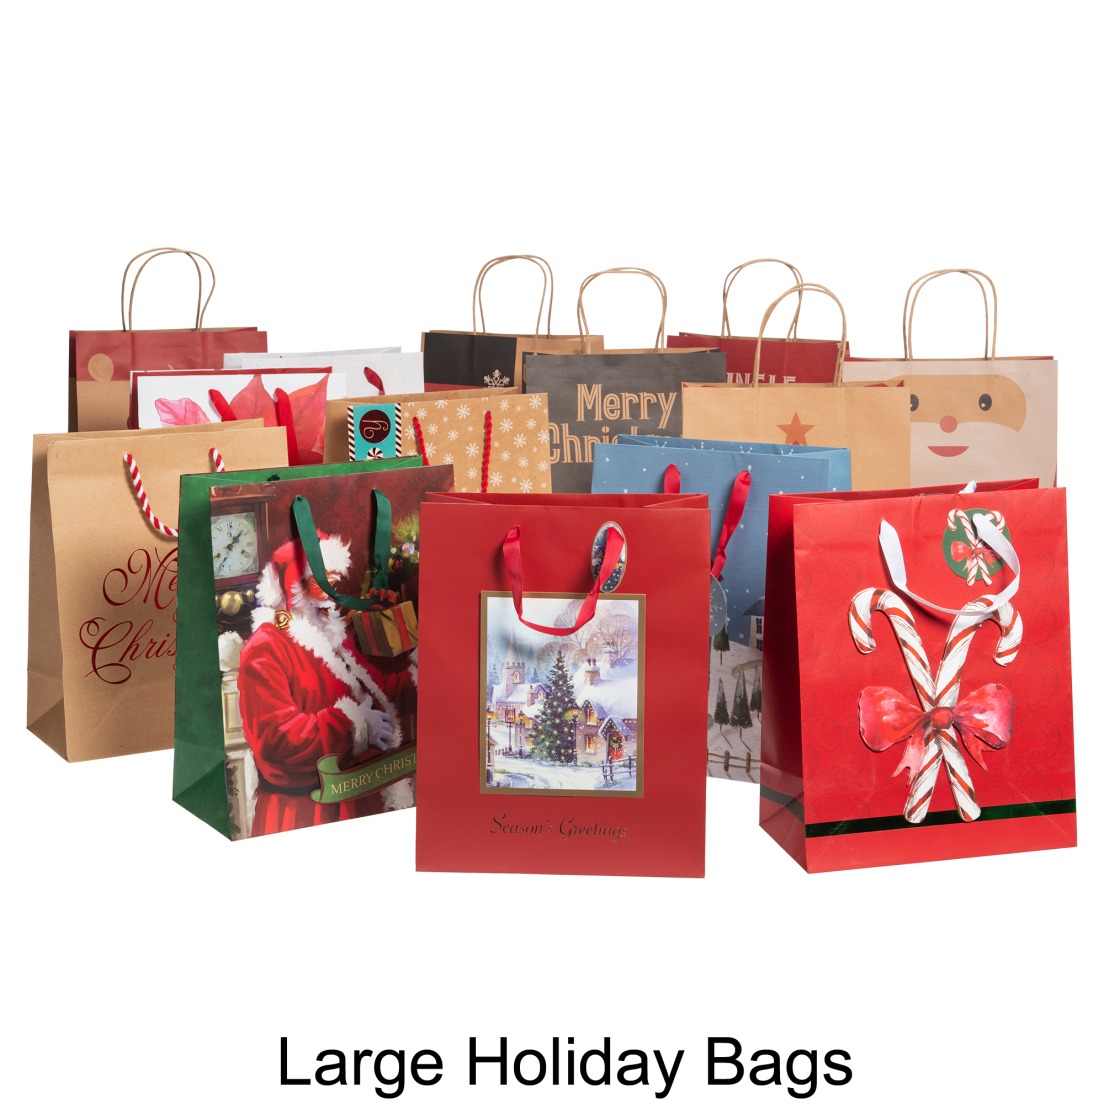 df733fab1f02 50-Pack of Holiday and All-Occasion Gift Bags